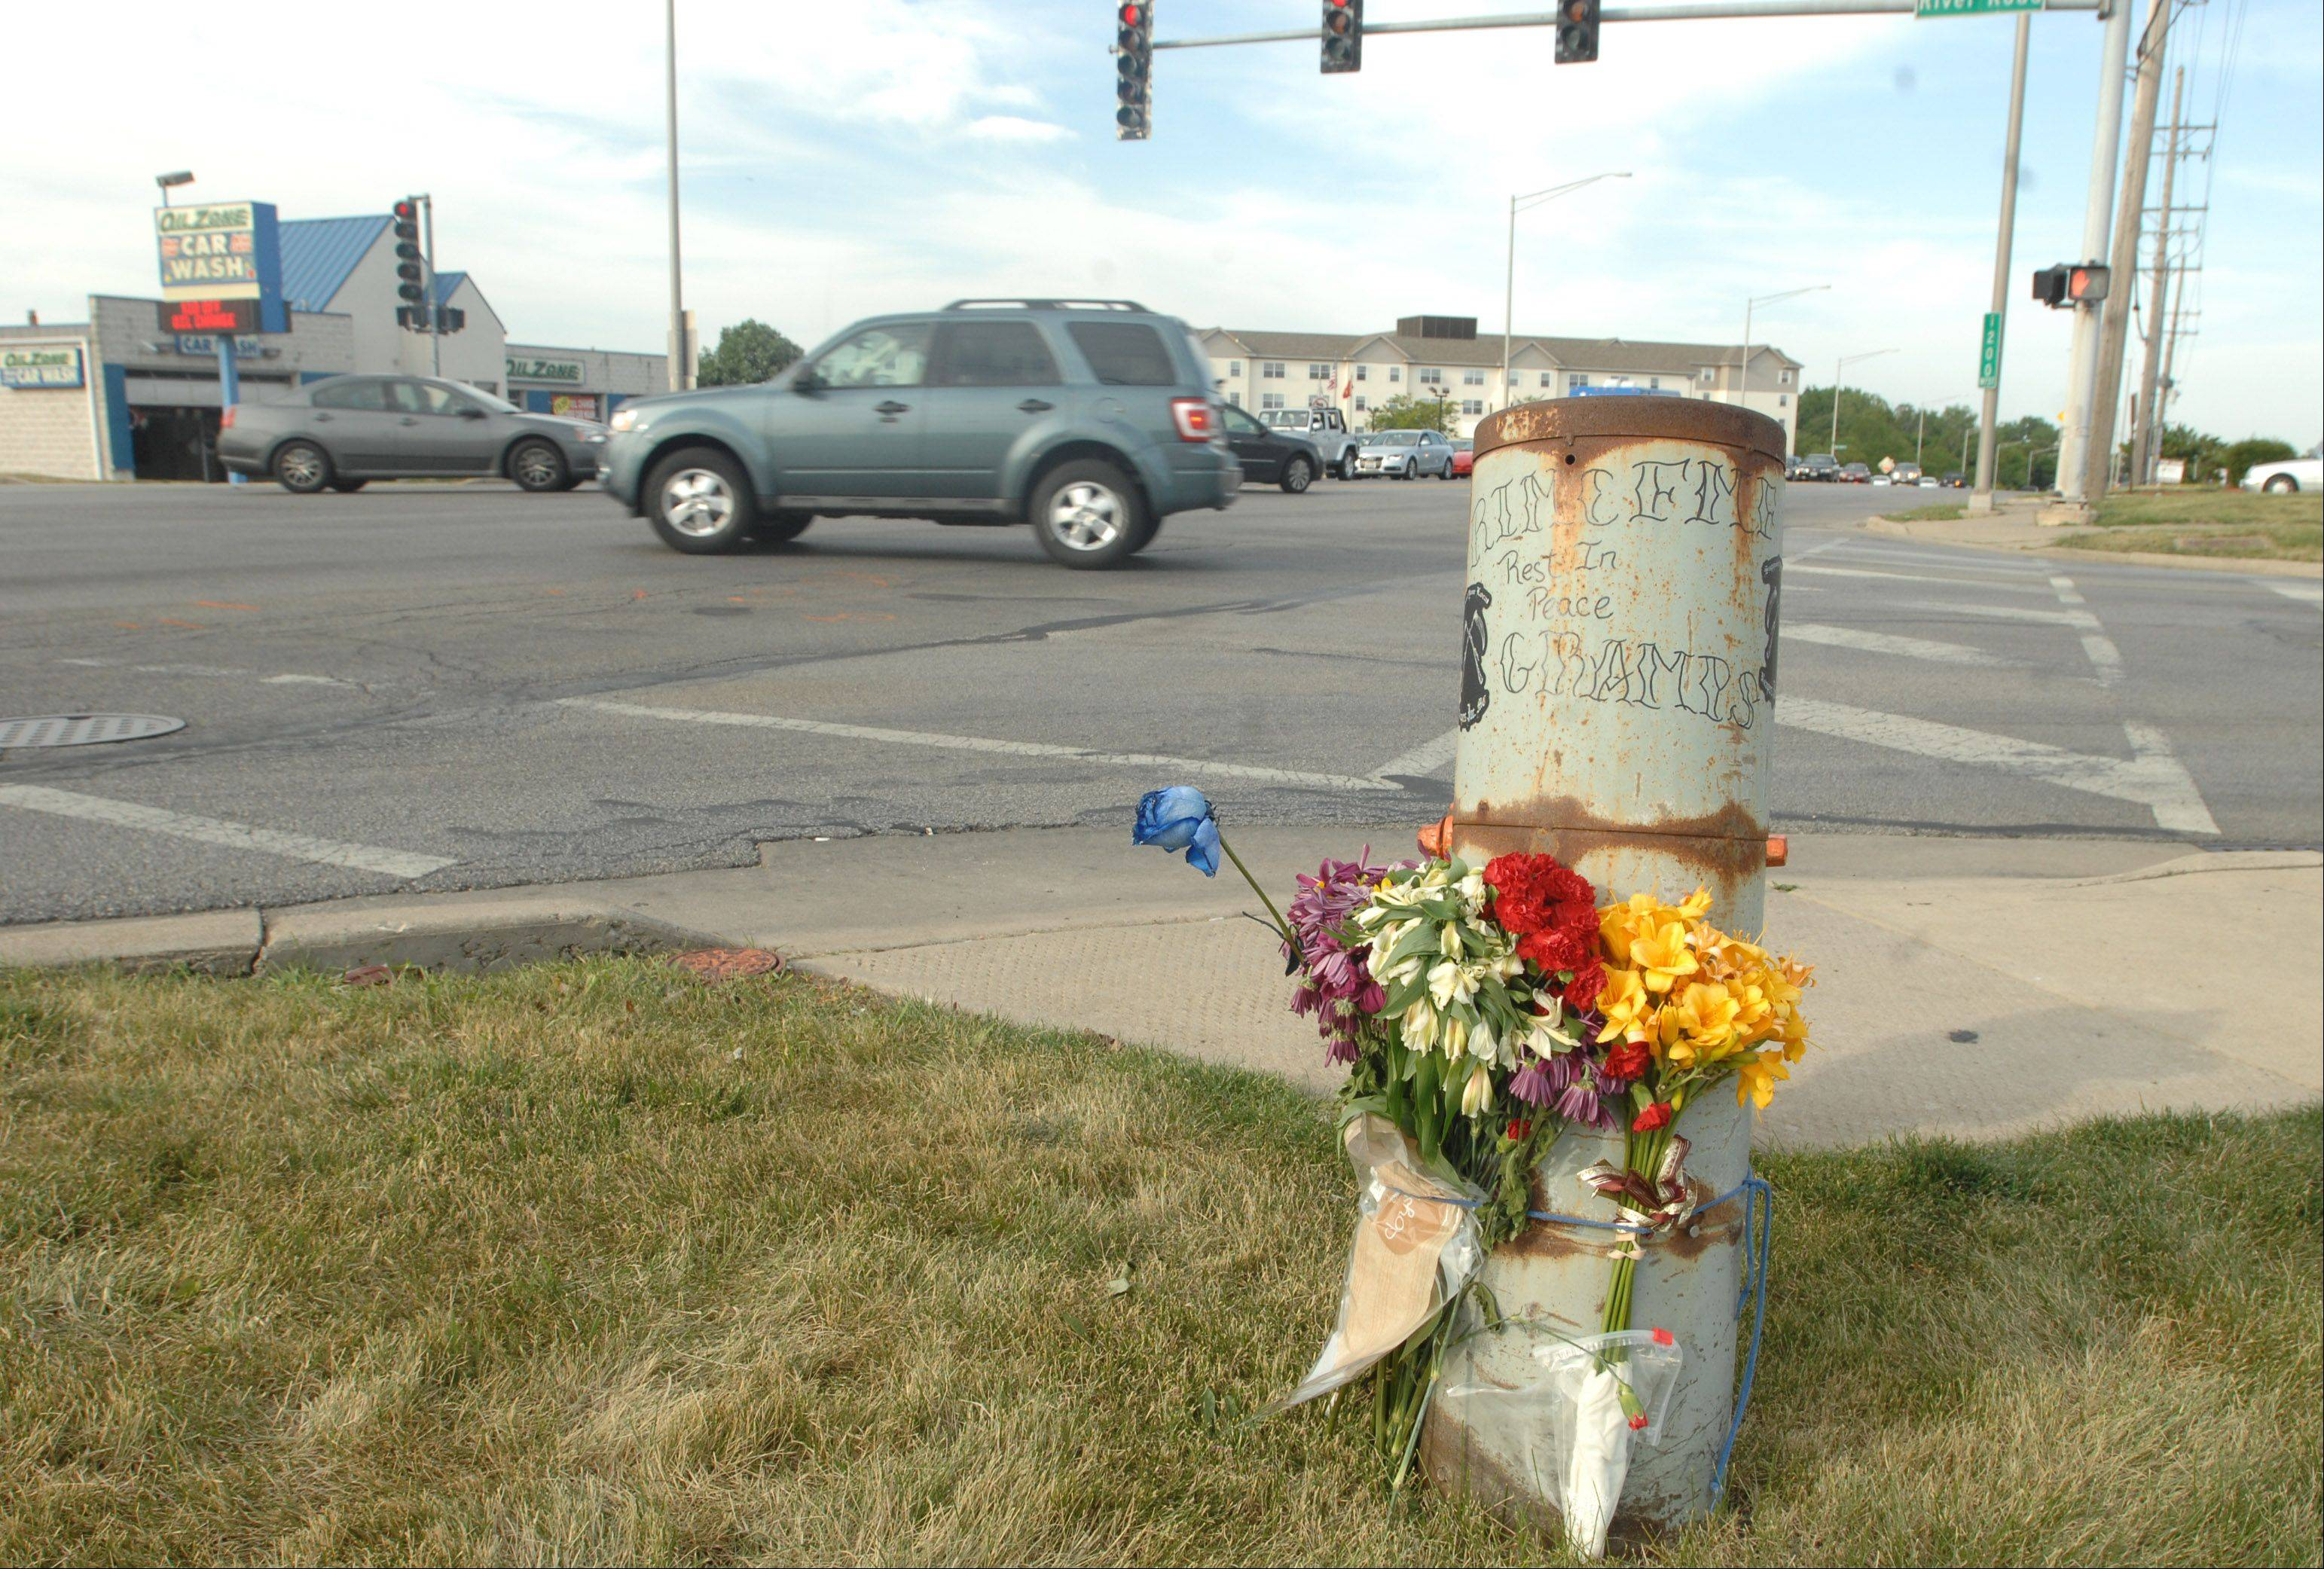 The intersection of River Road and Ogden Avenue in Naperville hosted a small memorial to Gerald Puglise after he was killed in a crash there last June.